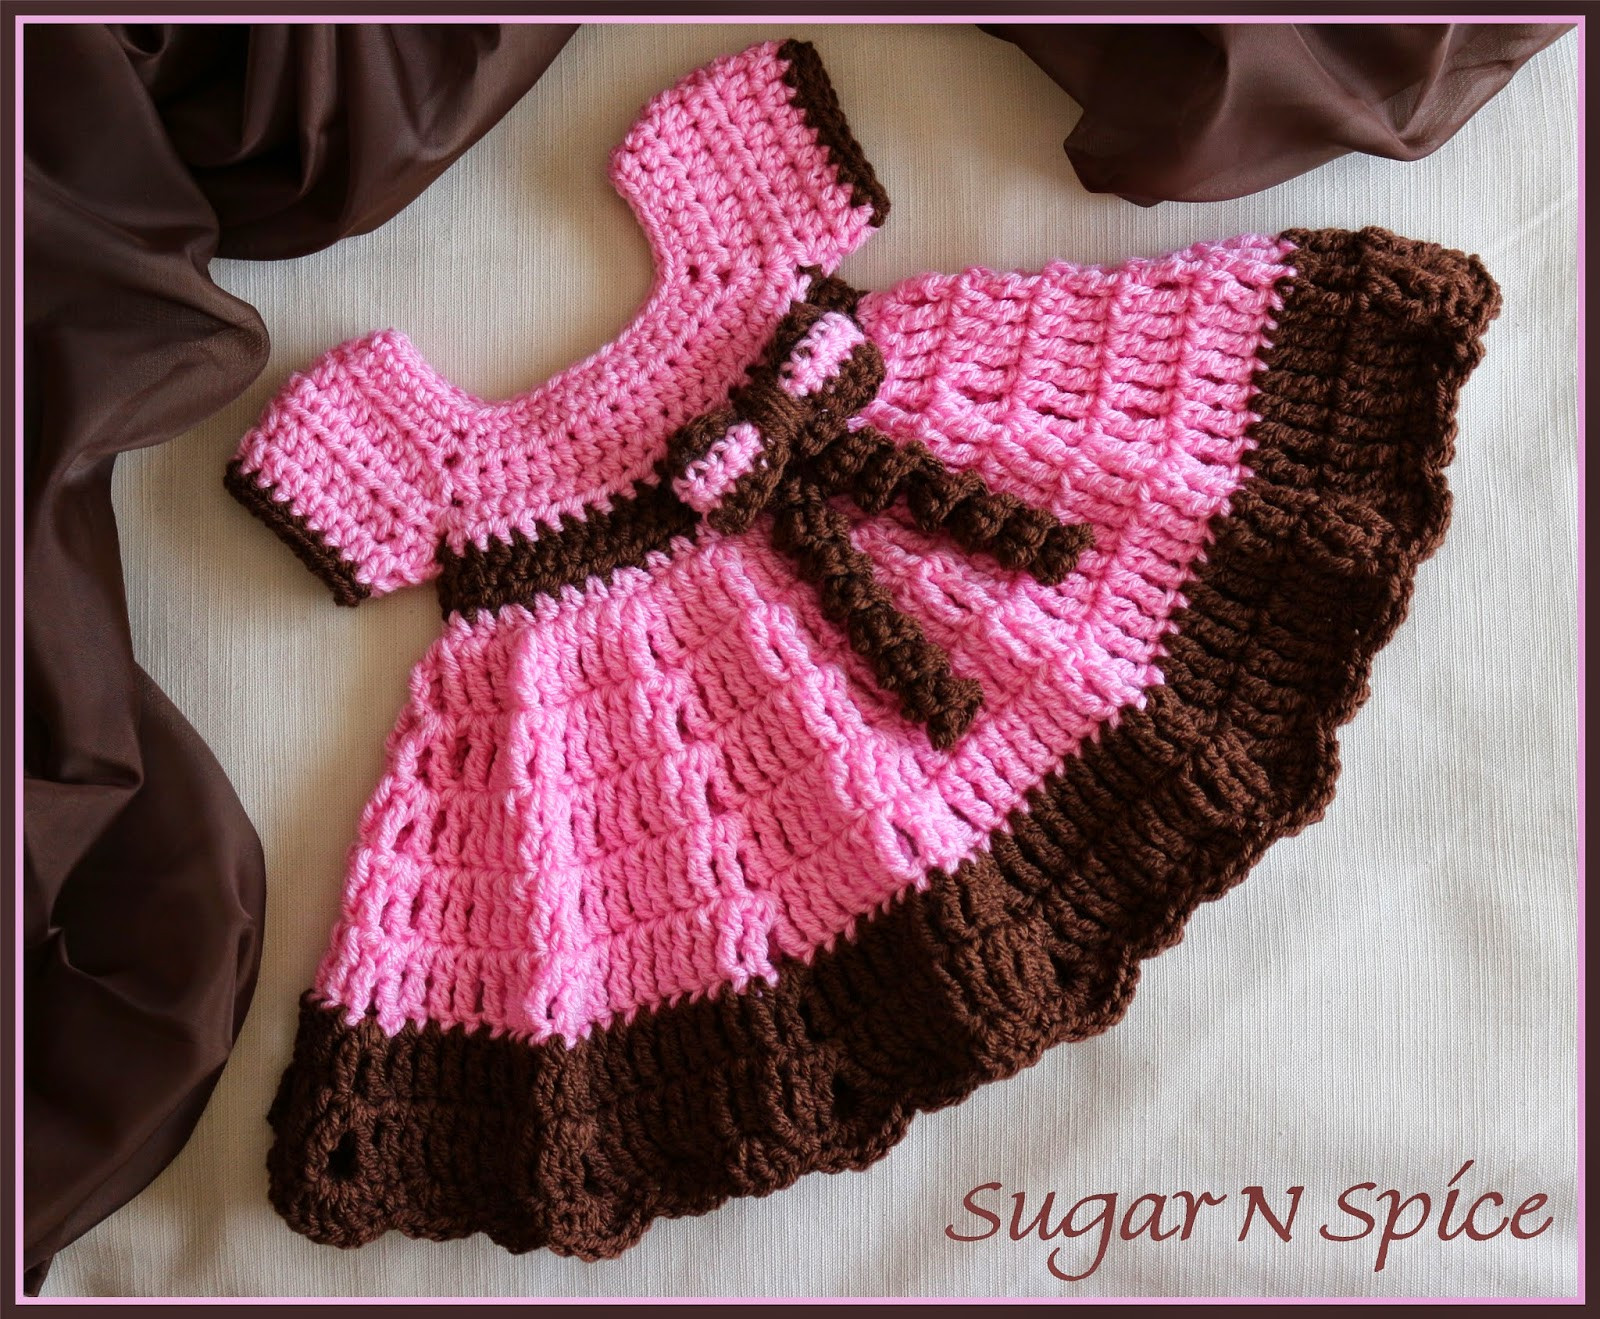 Unique Easy Crochet Baby Dress Patterns Dress Up Your Pretty Free Crochet toddler Dress Patterns Of Delightful 45 Pics Free Crochet toddler Dress Patterns